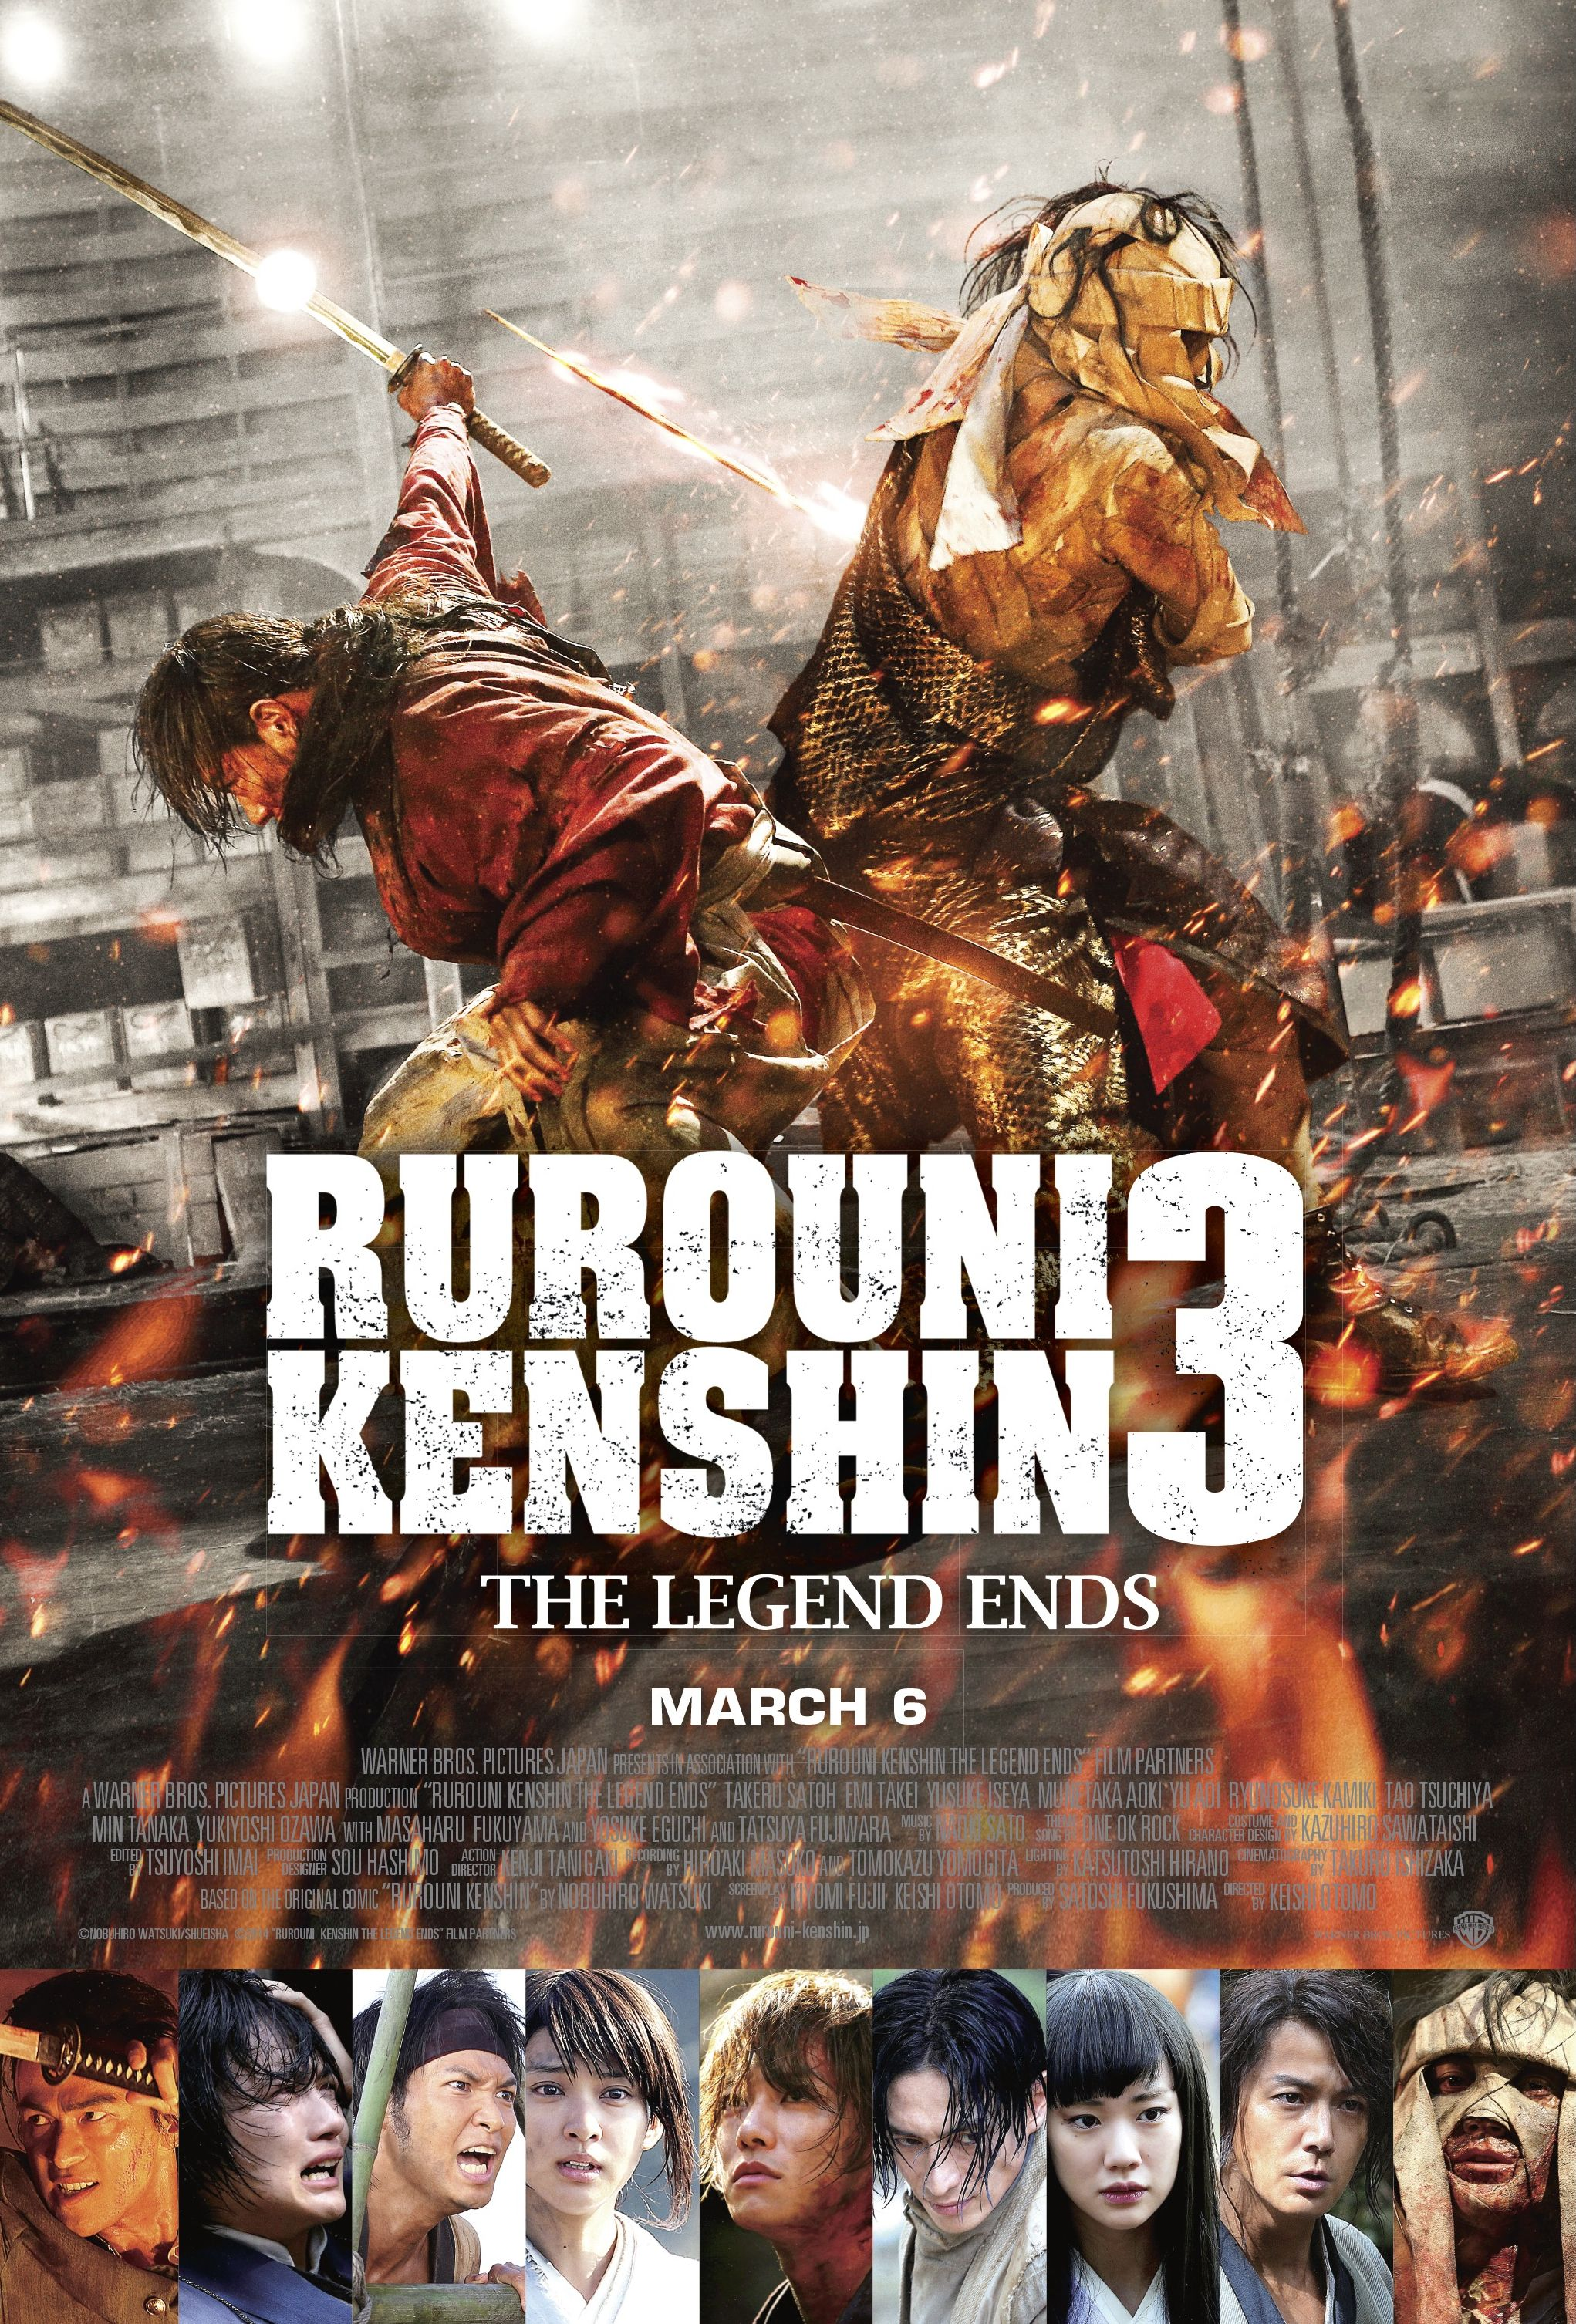 Rorouni Kenshin The Legend Ends Finally, finishing this